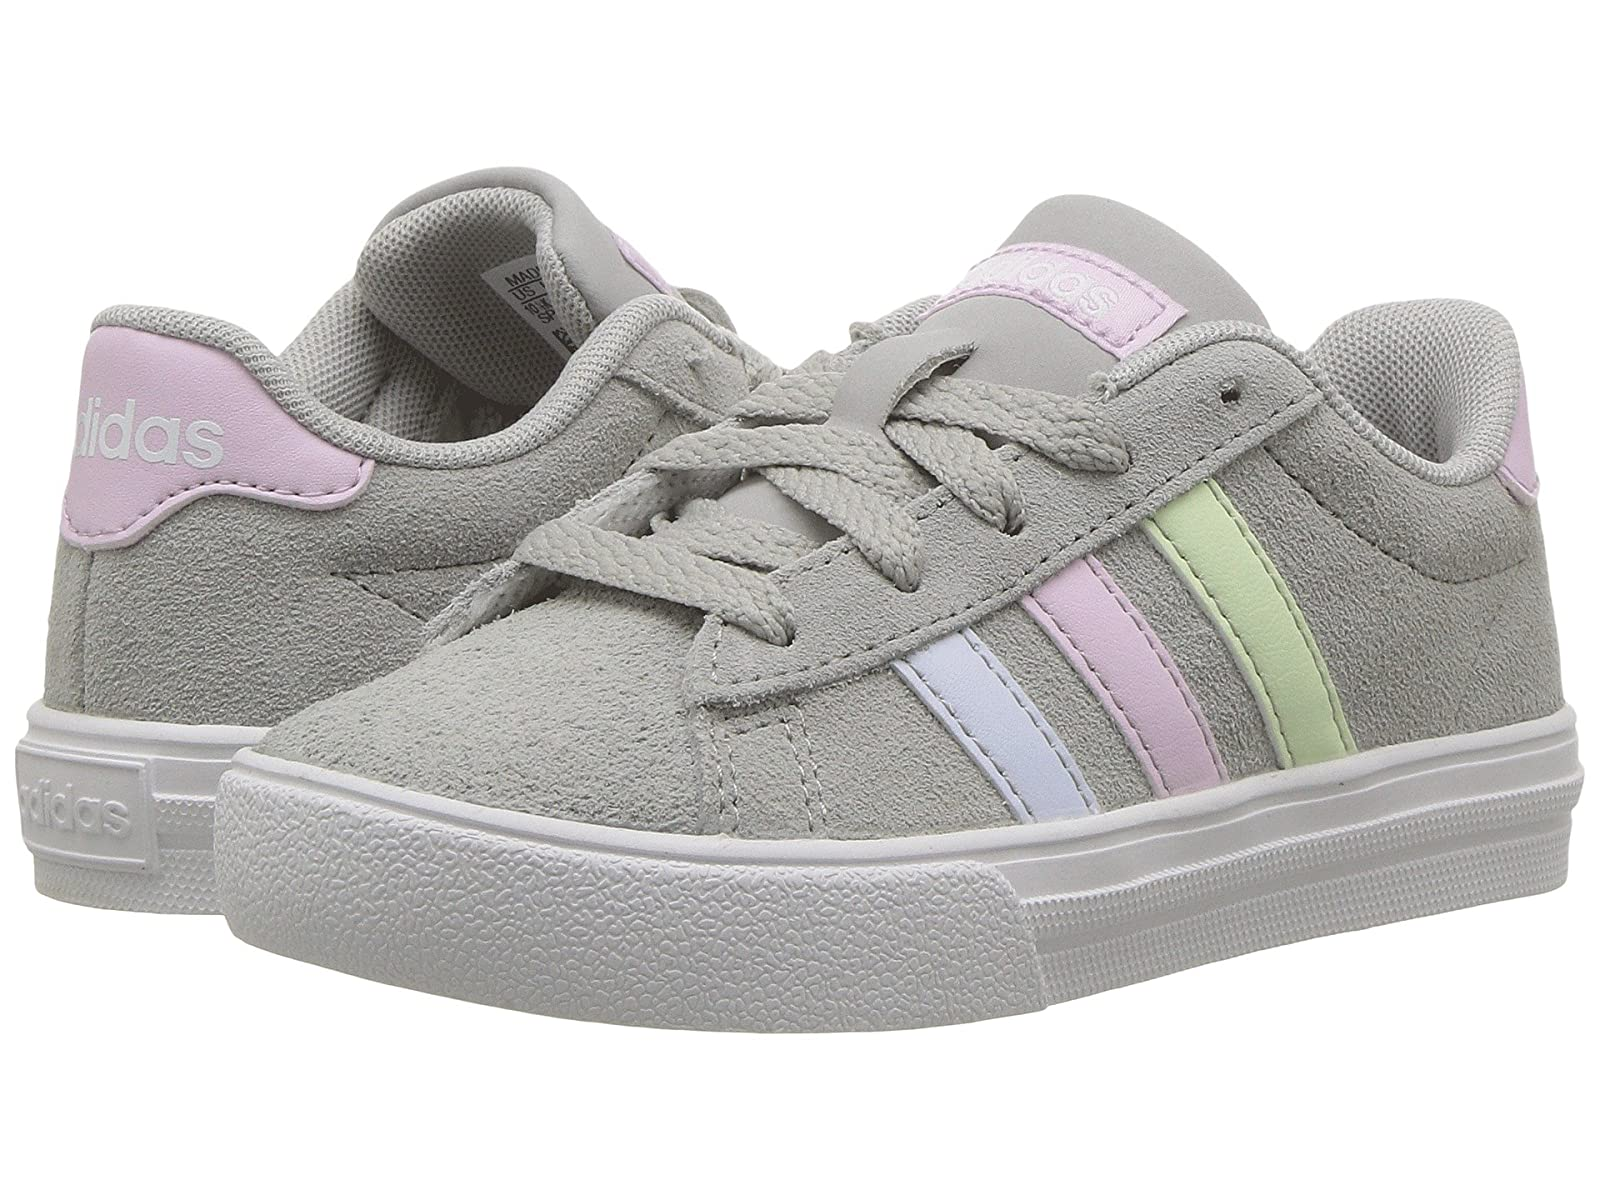 adidas Kids Daily 2.0 (Little Kid/Big Kid)Stylish and characteristic shoes